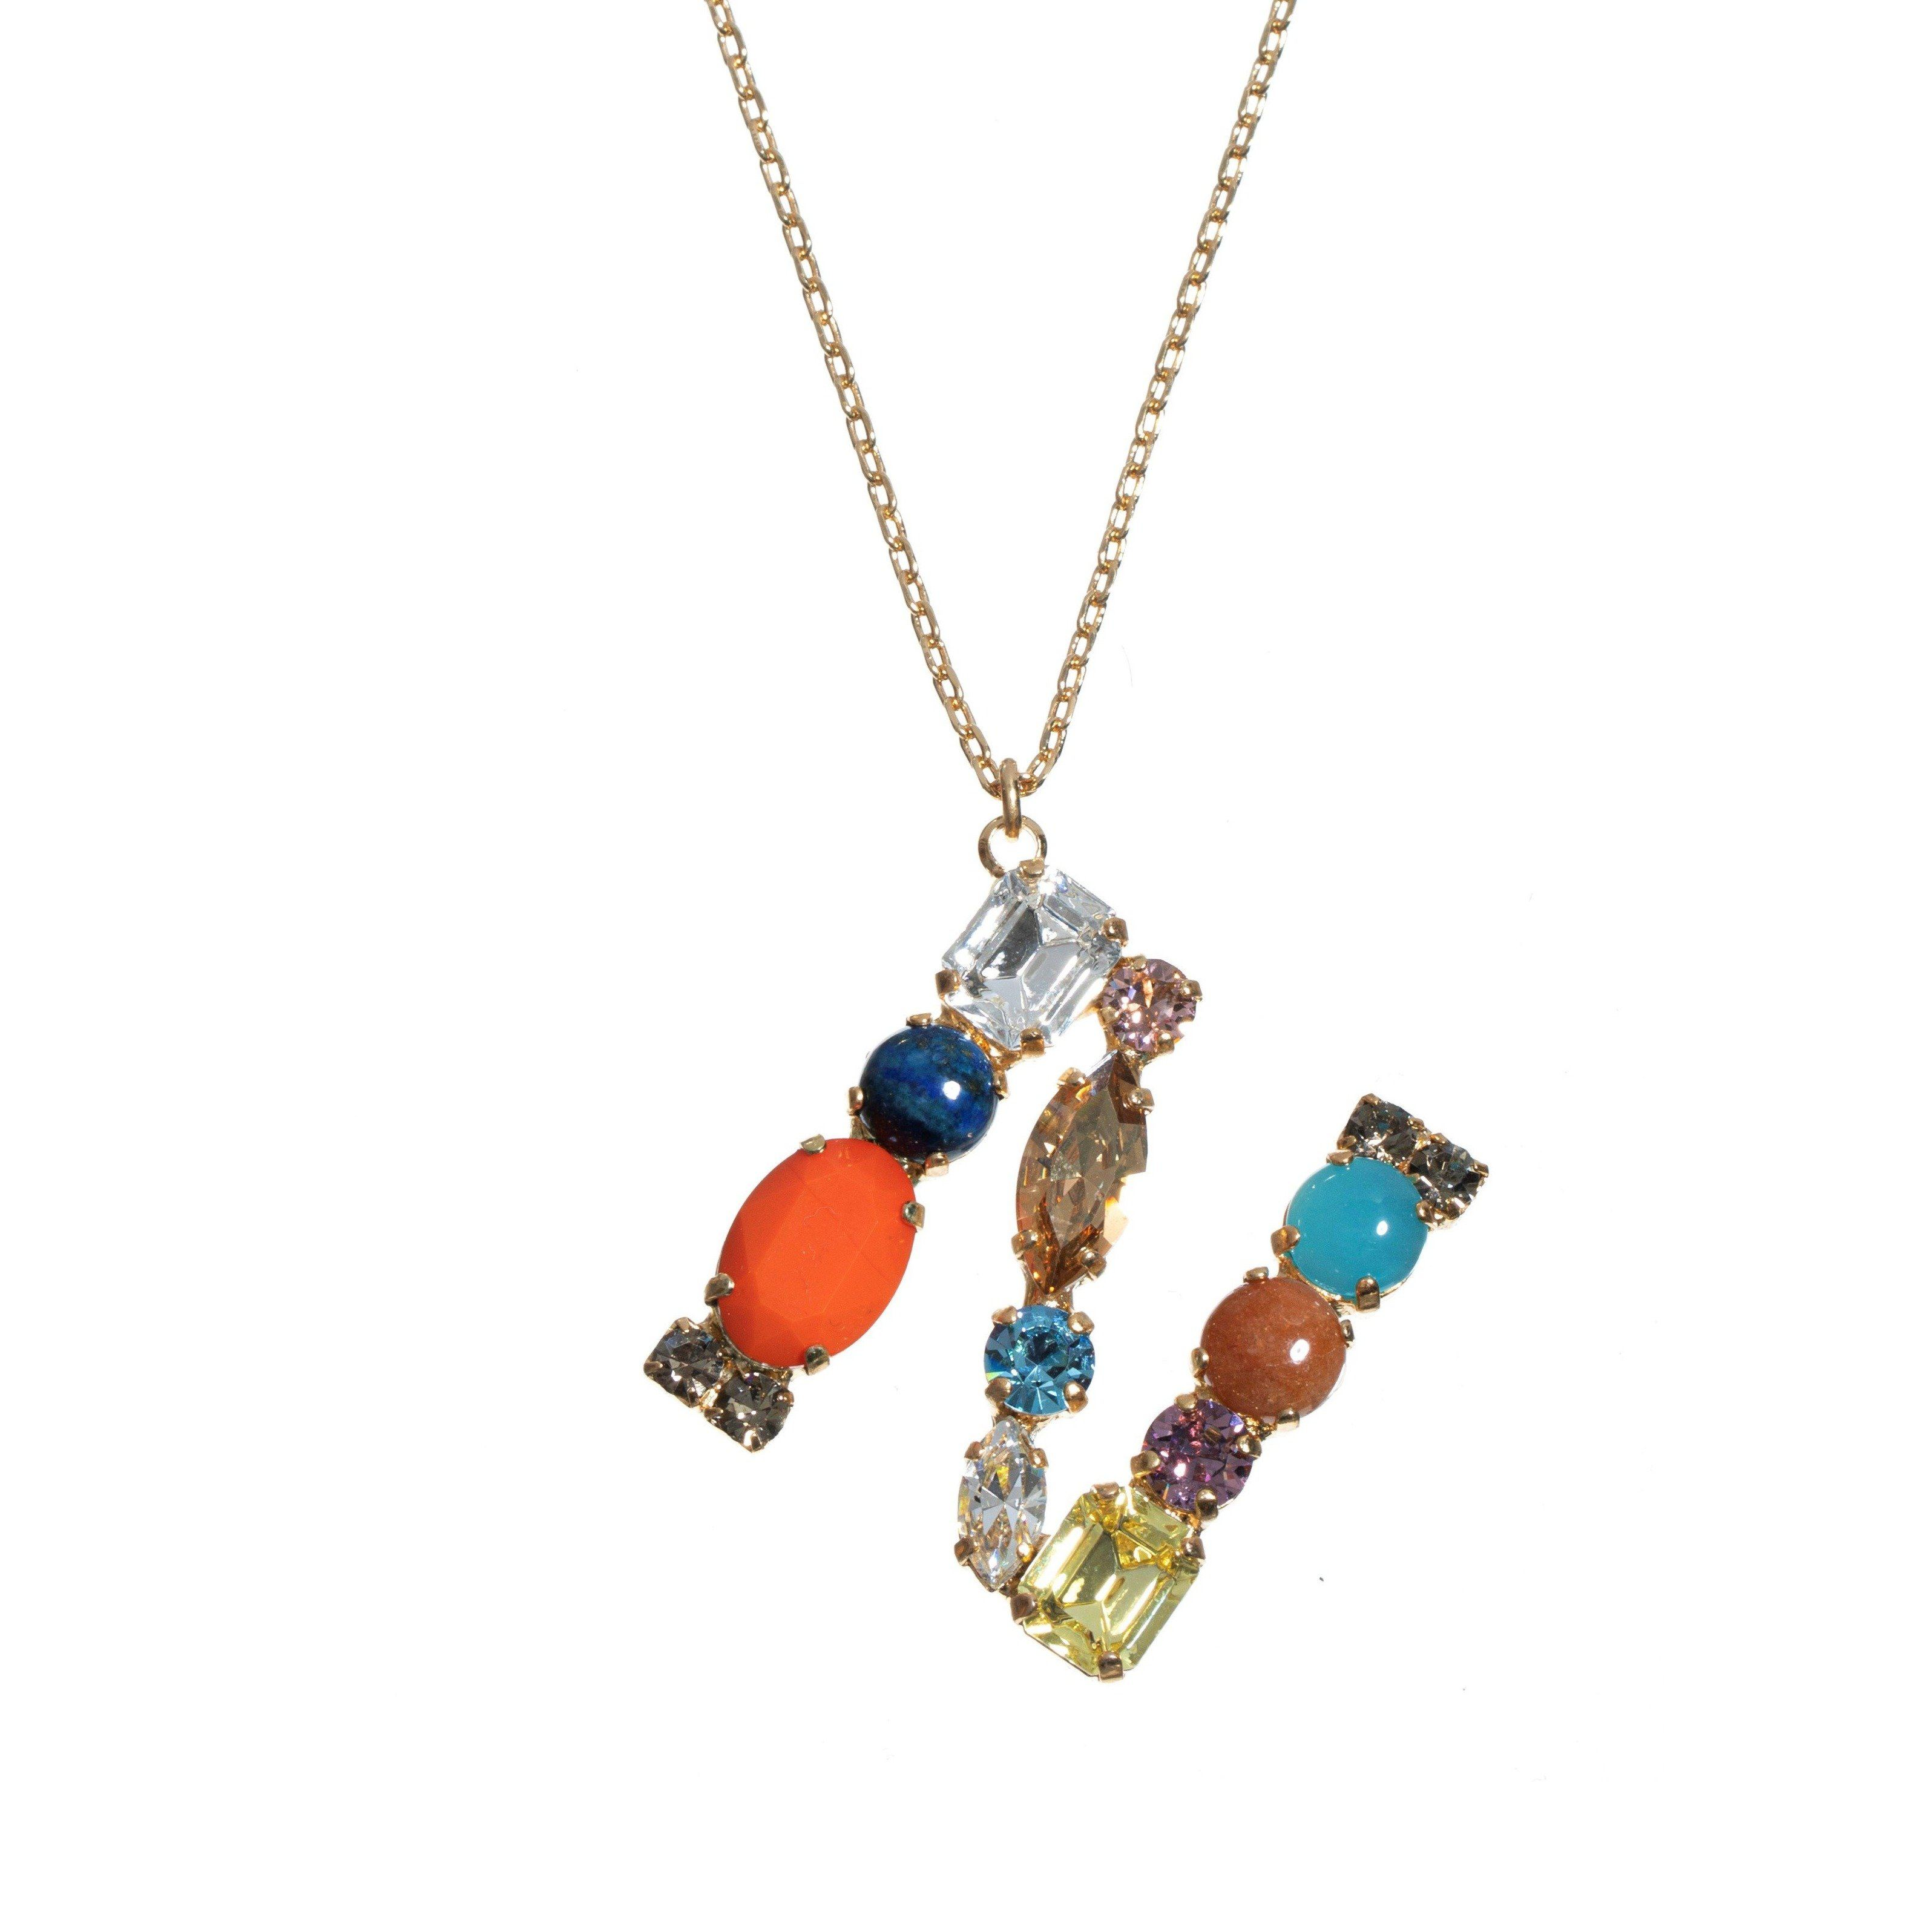 N Crystal Necklace